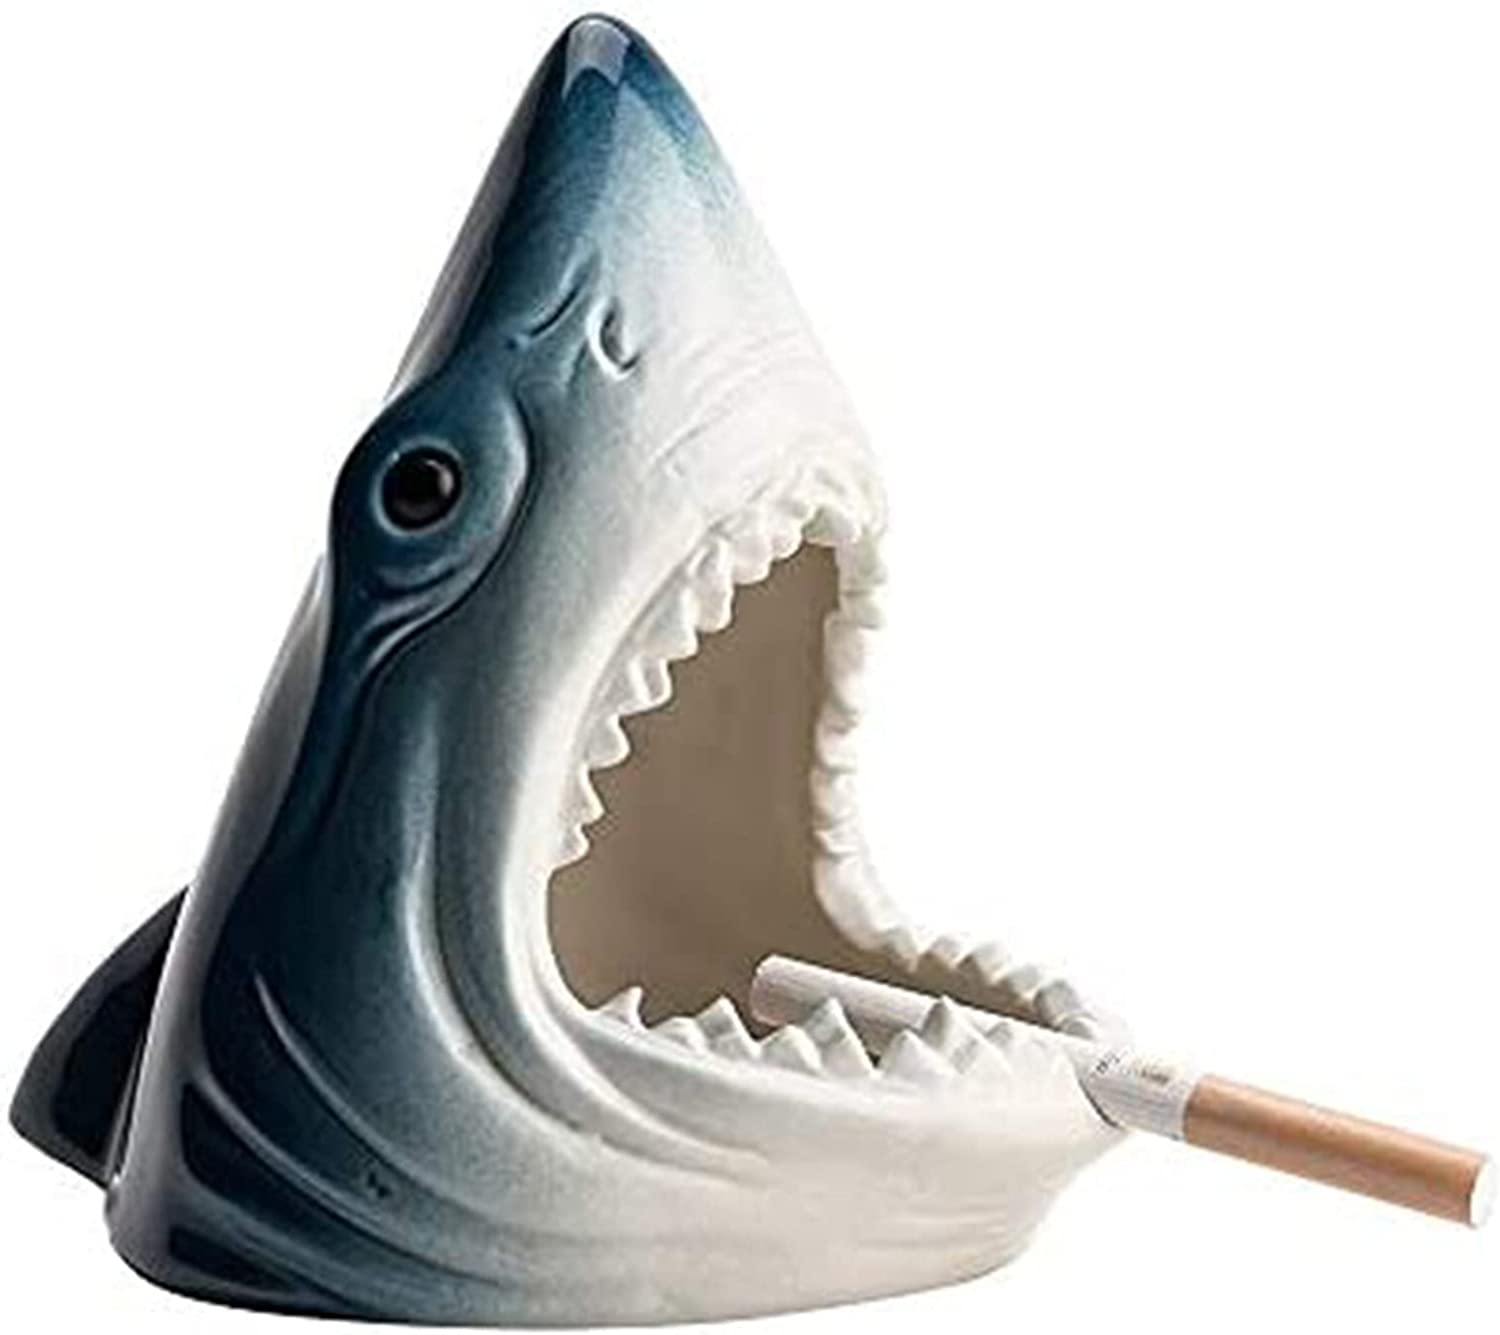 Meng Ceramic Shark Weekly update Ashtray Ashtrays Suitabl Personality Creative Very popular